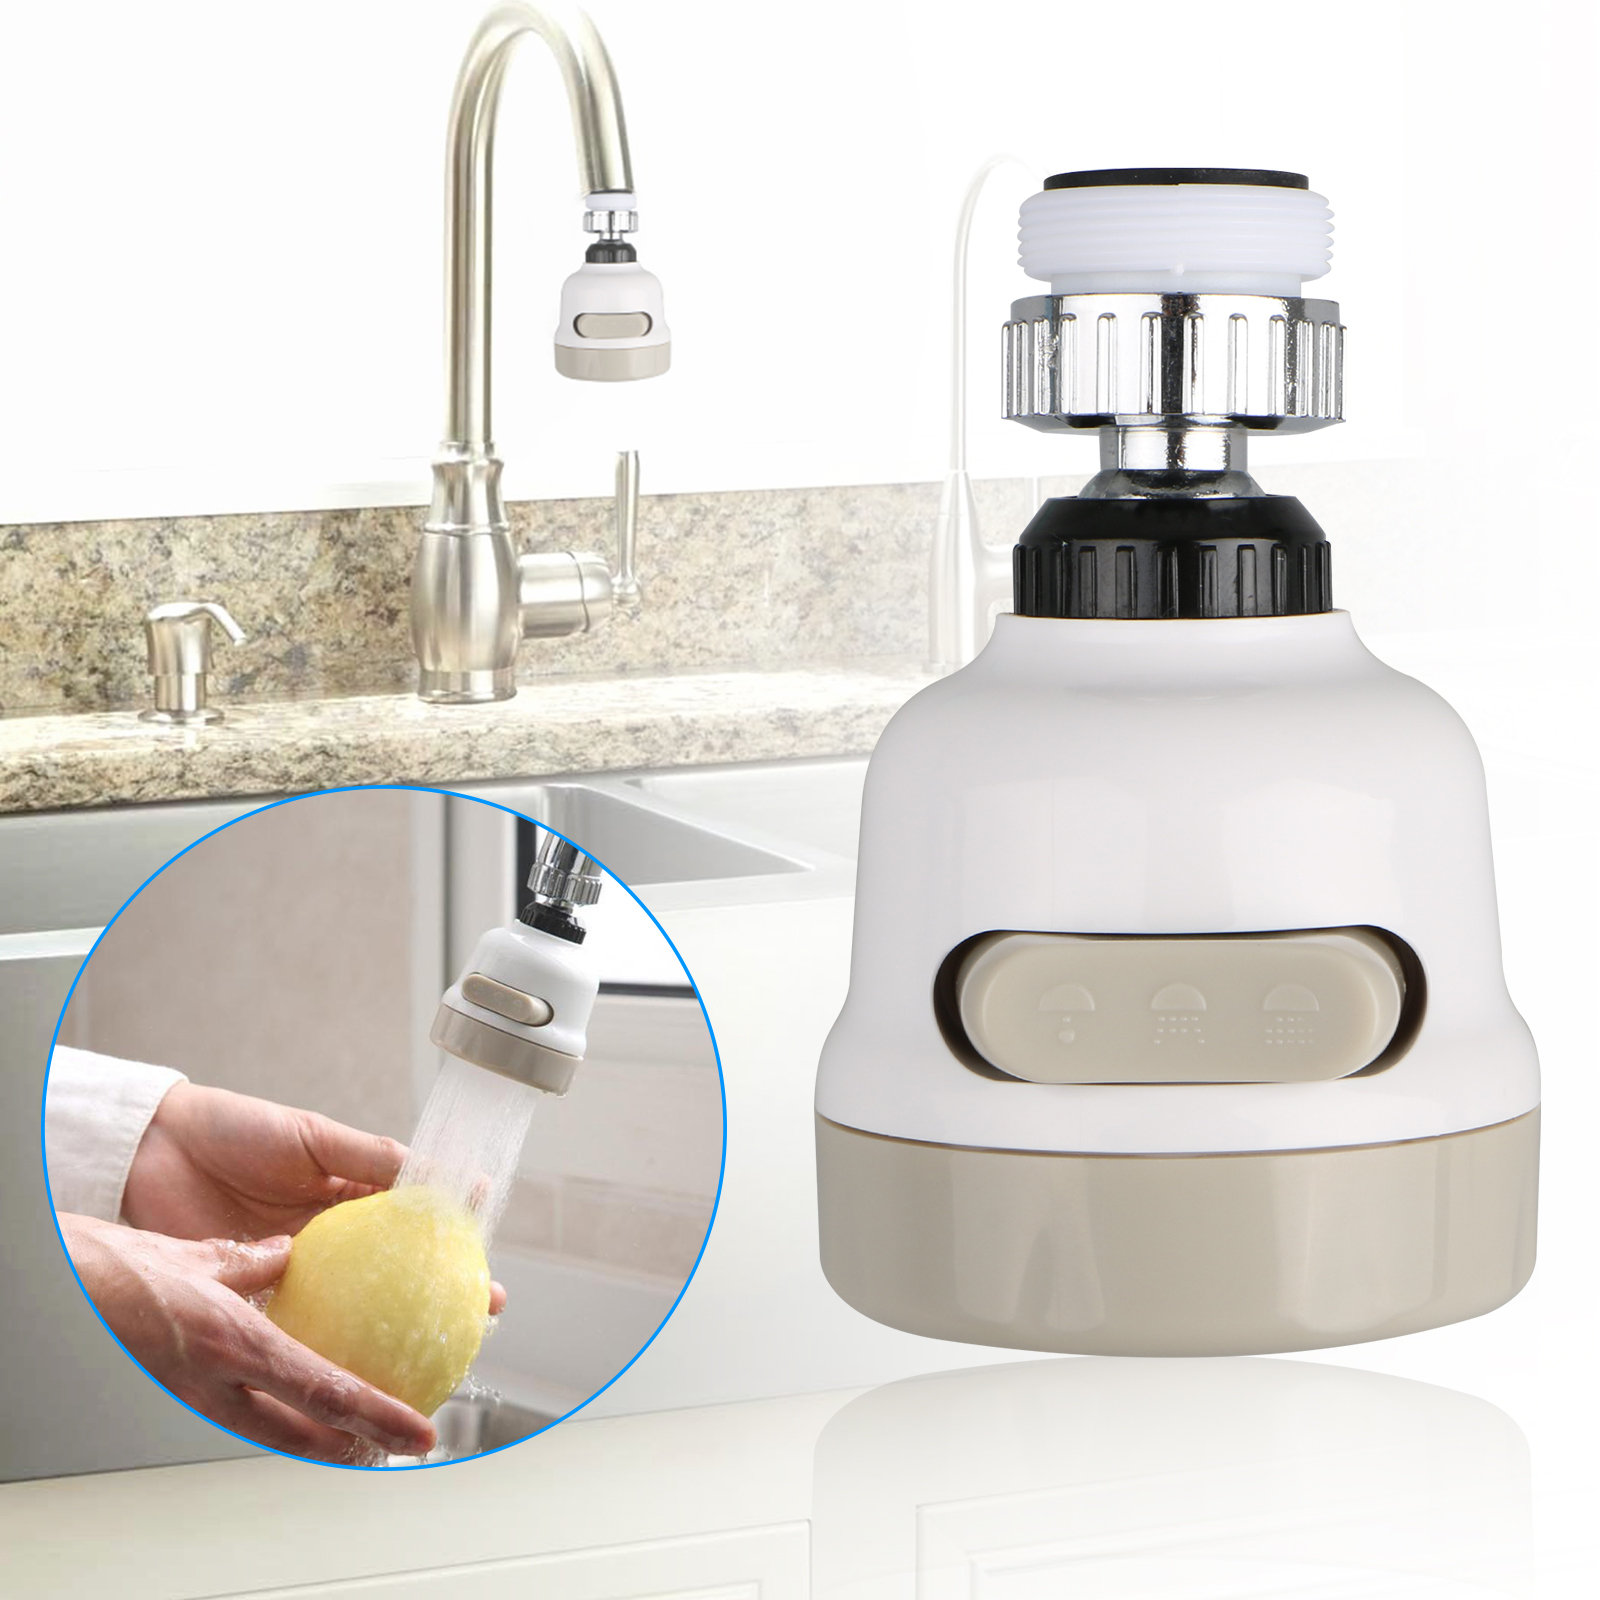 Moveable Swivel Kitchen Tap Head Water Saving Faucet Extender Sprayer Nozzle US